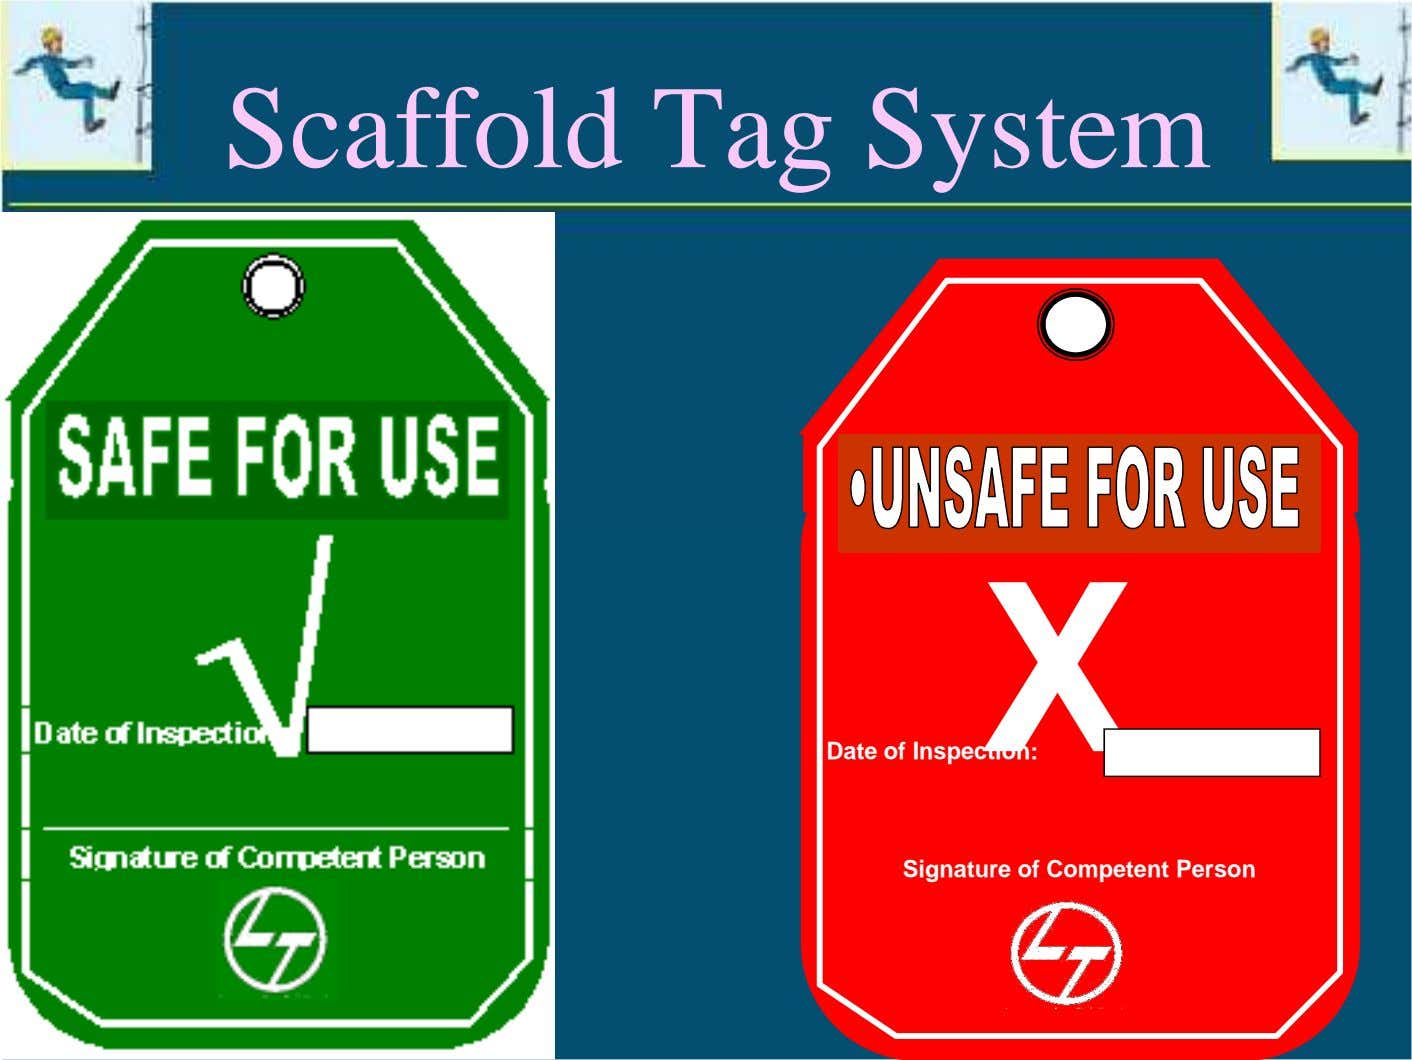 Scaffold Tag System X Date of Inspection: Signature of Competent Person